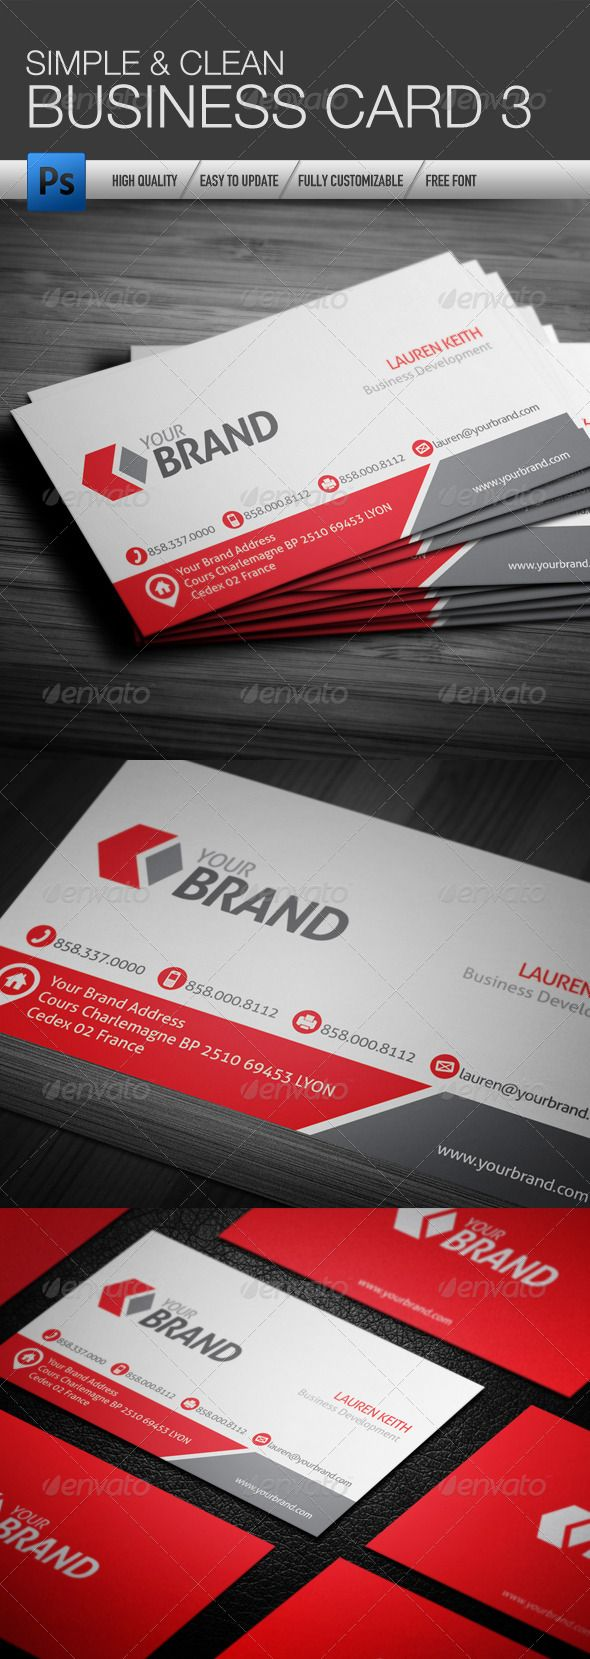 Best 25 cleaning business cards ideas on pinterest visit cards simple and clean business card 3 magicingreecefo Images